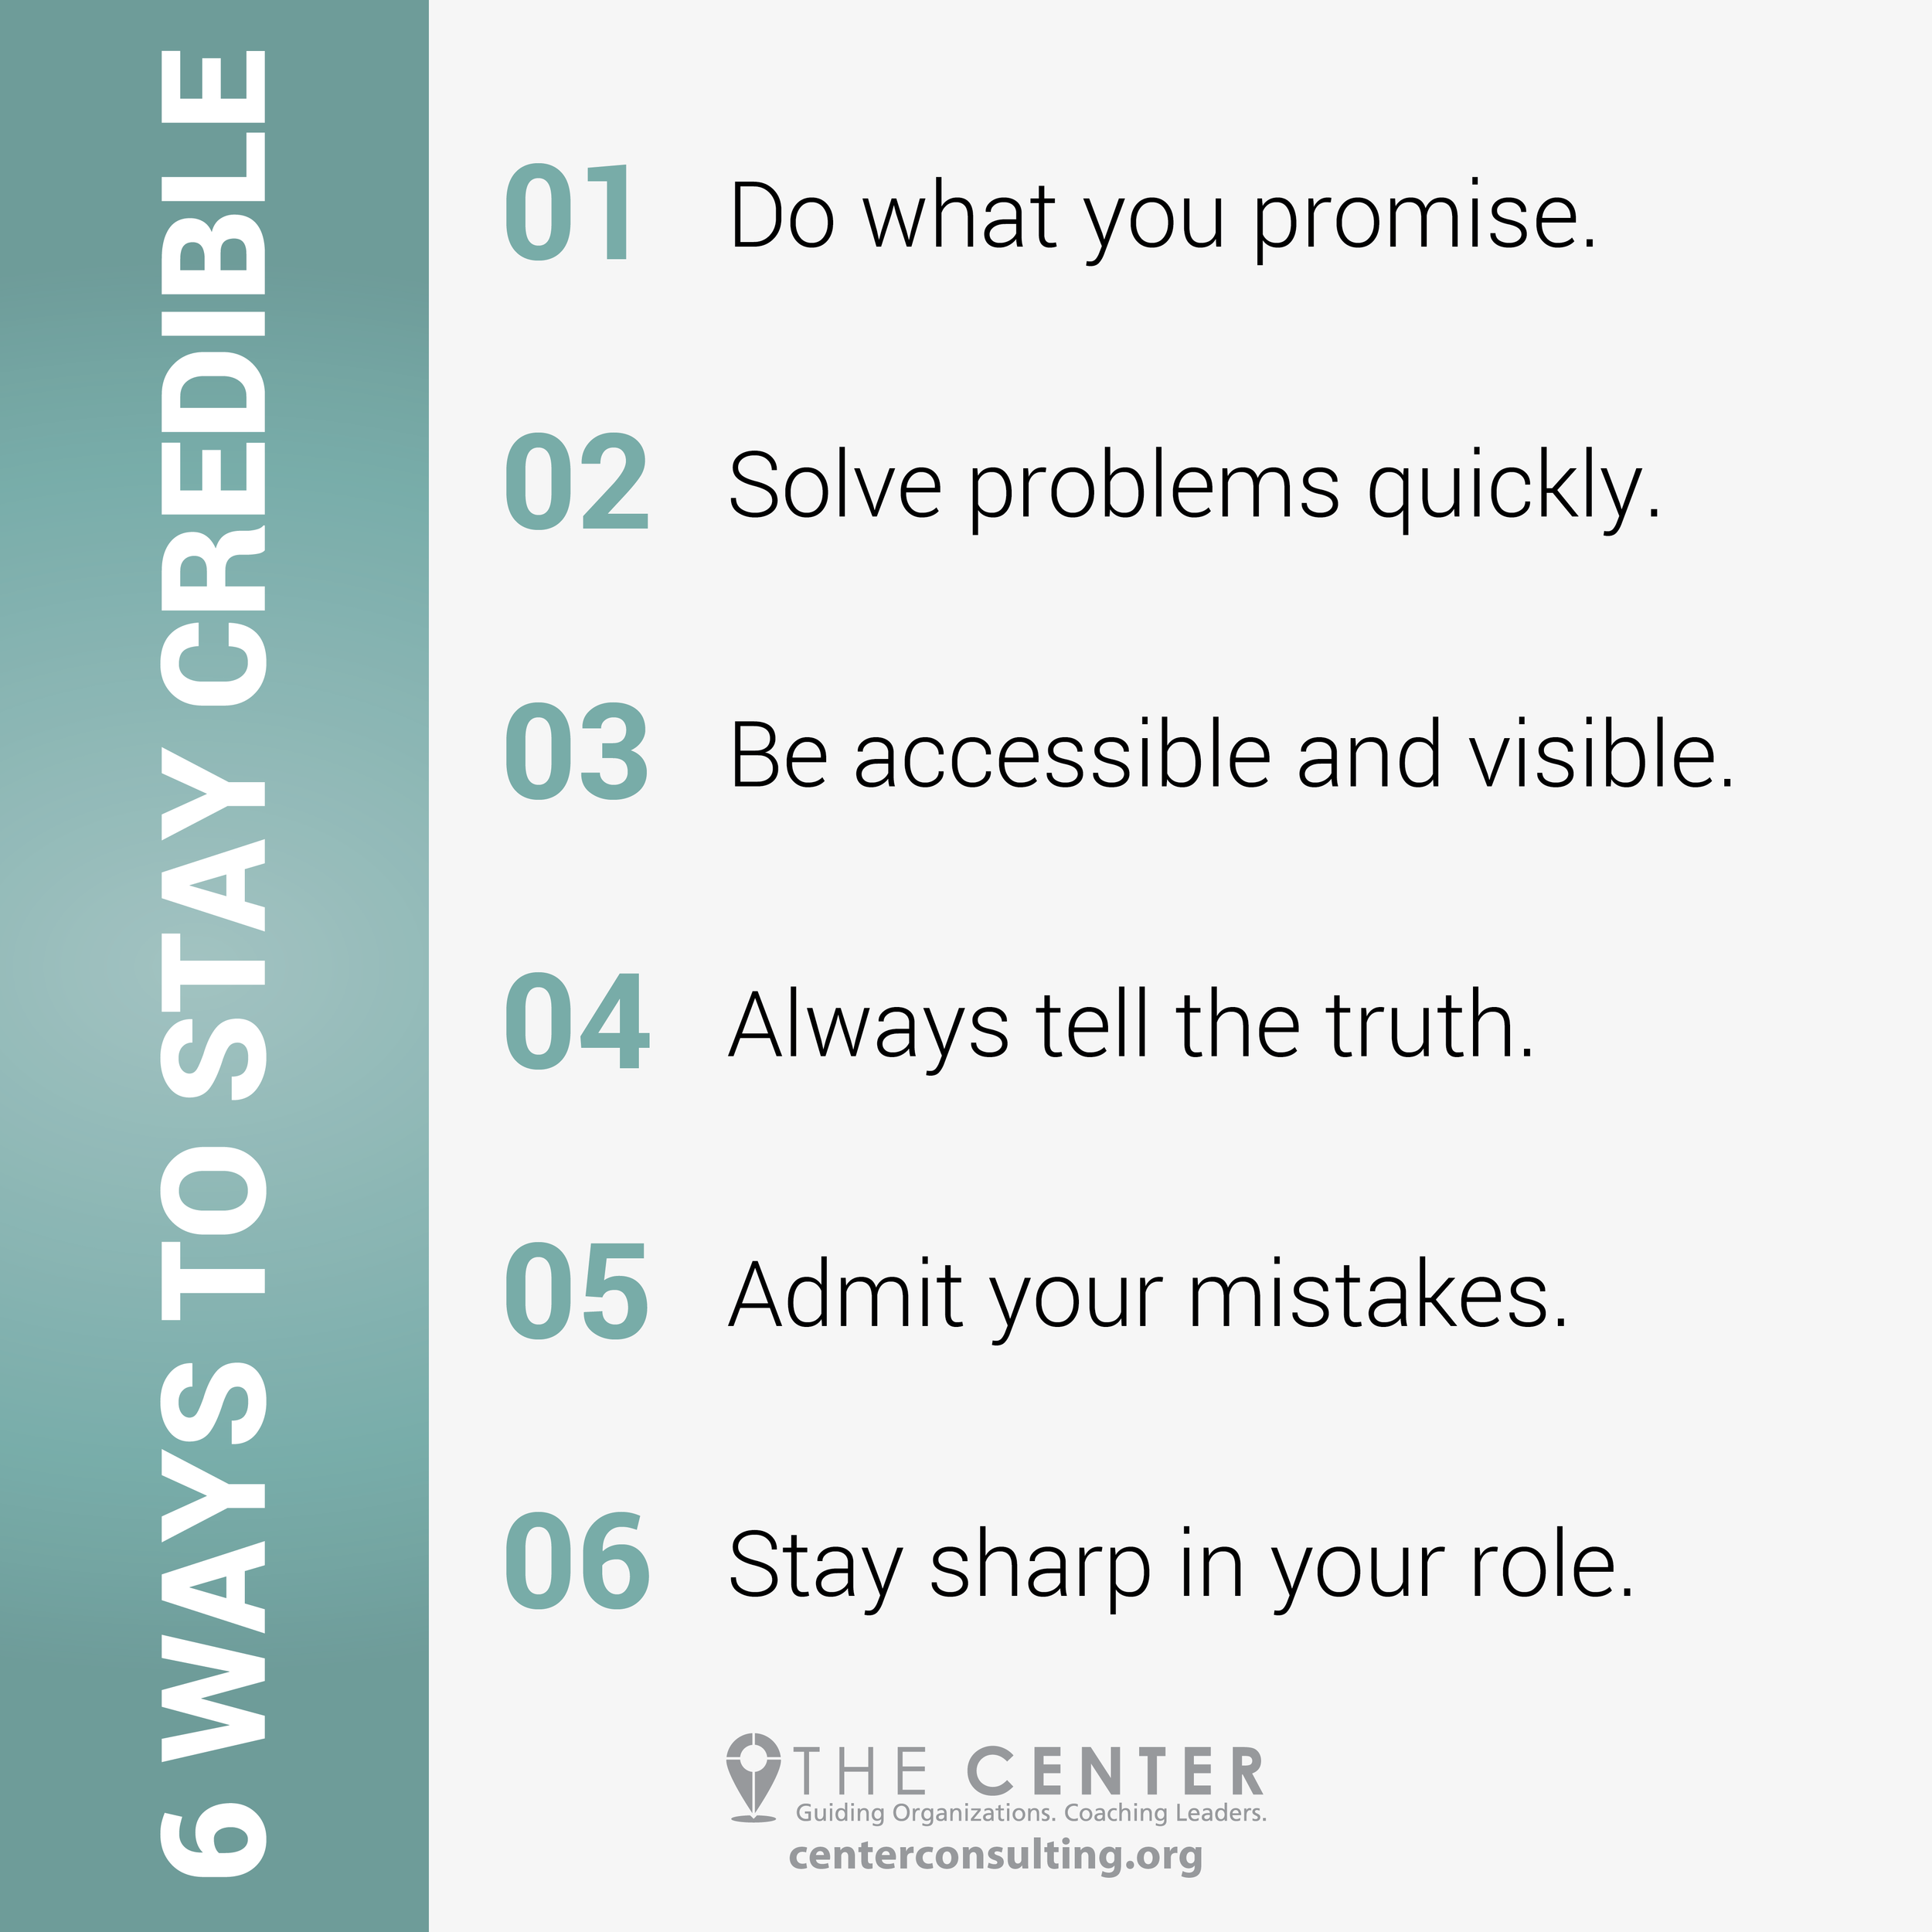 Want to Keep Your Credibility? Do These 6 Things - The Center Consulting Group - Leadership Coaching and Consulting